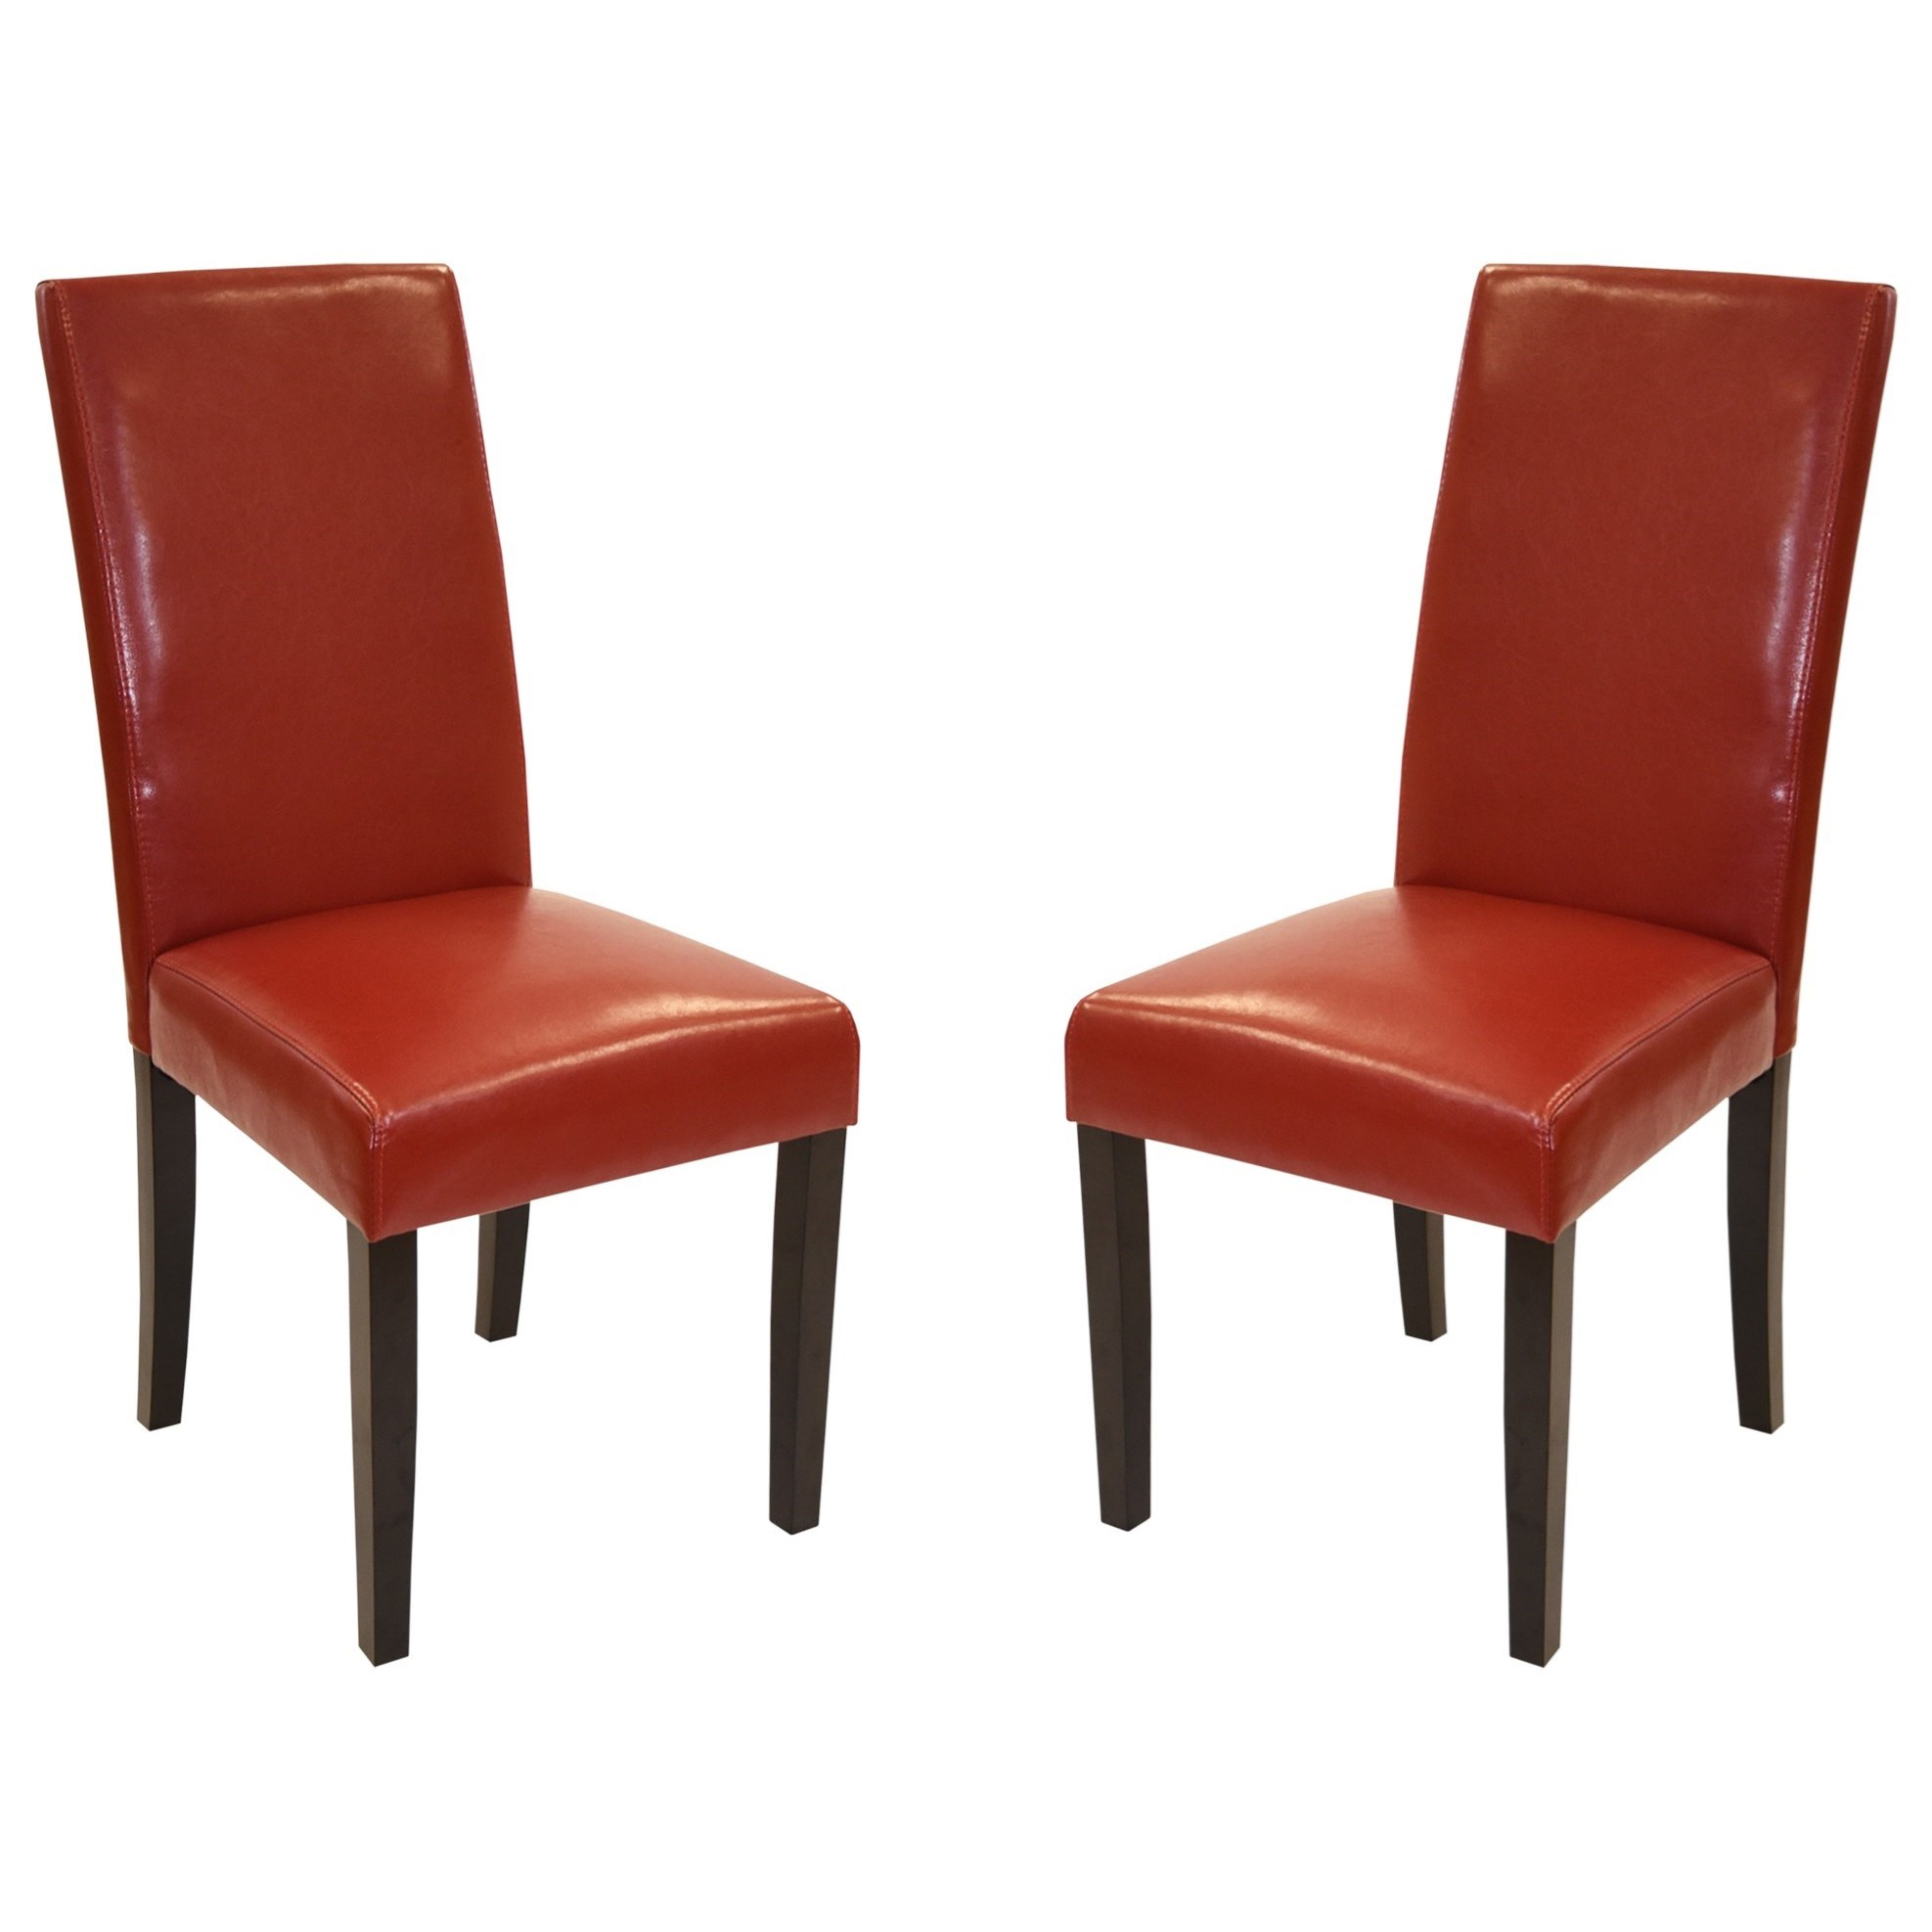 MD-014  Set of 2 Side Chairs at Sadler's Home Furnishings